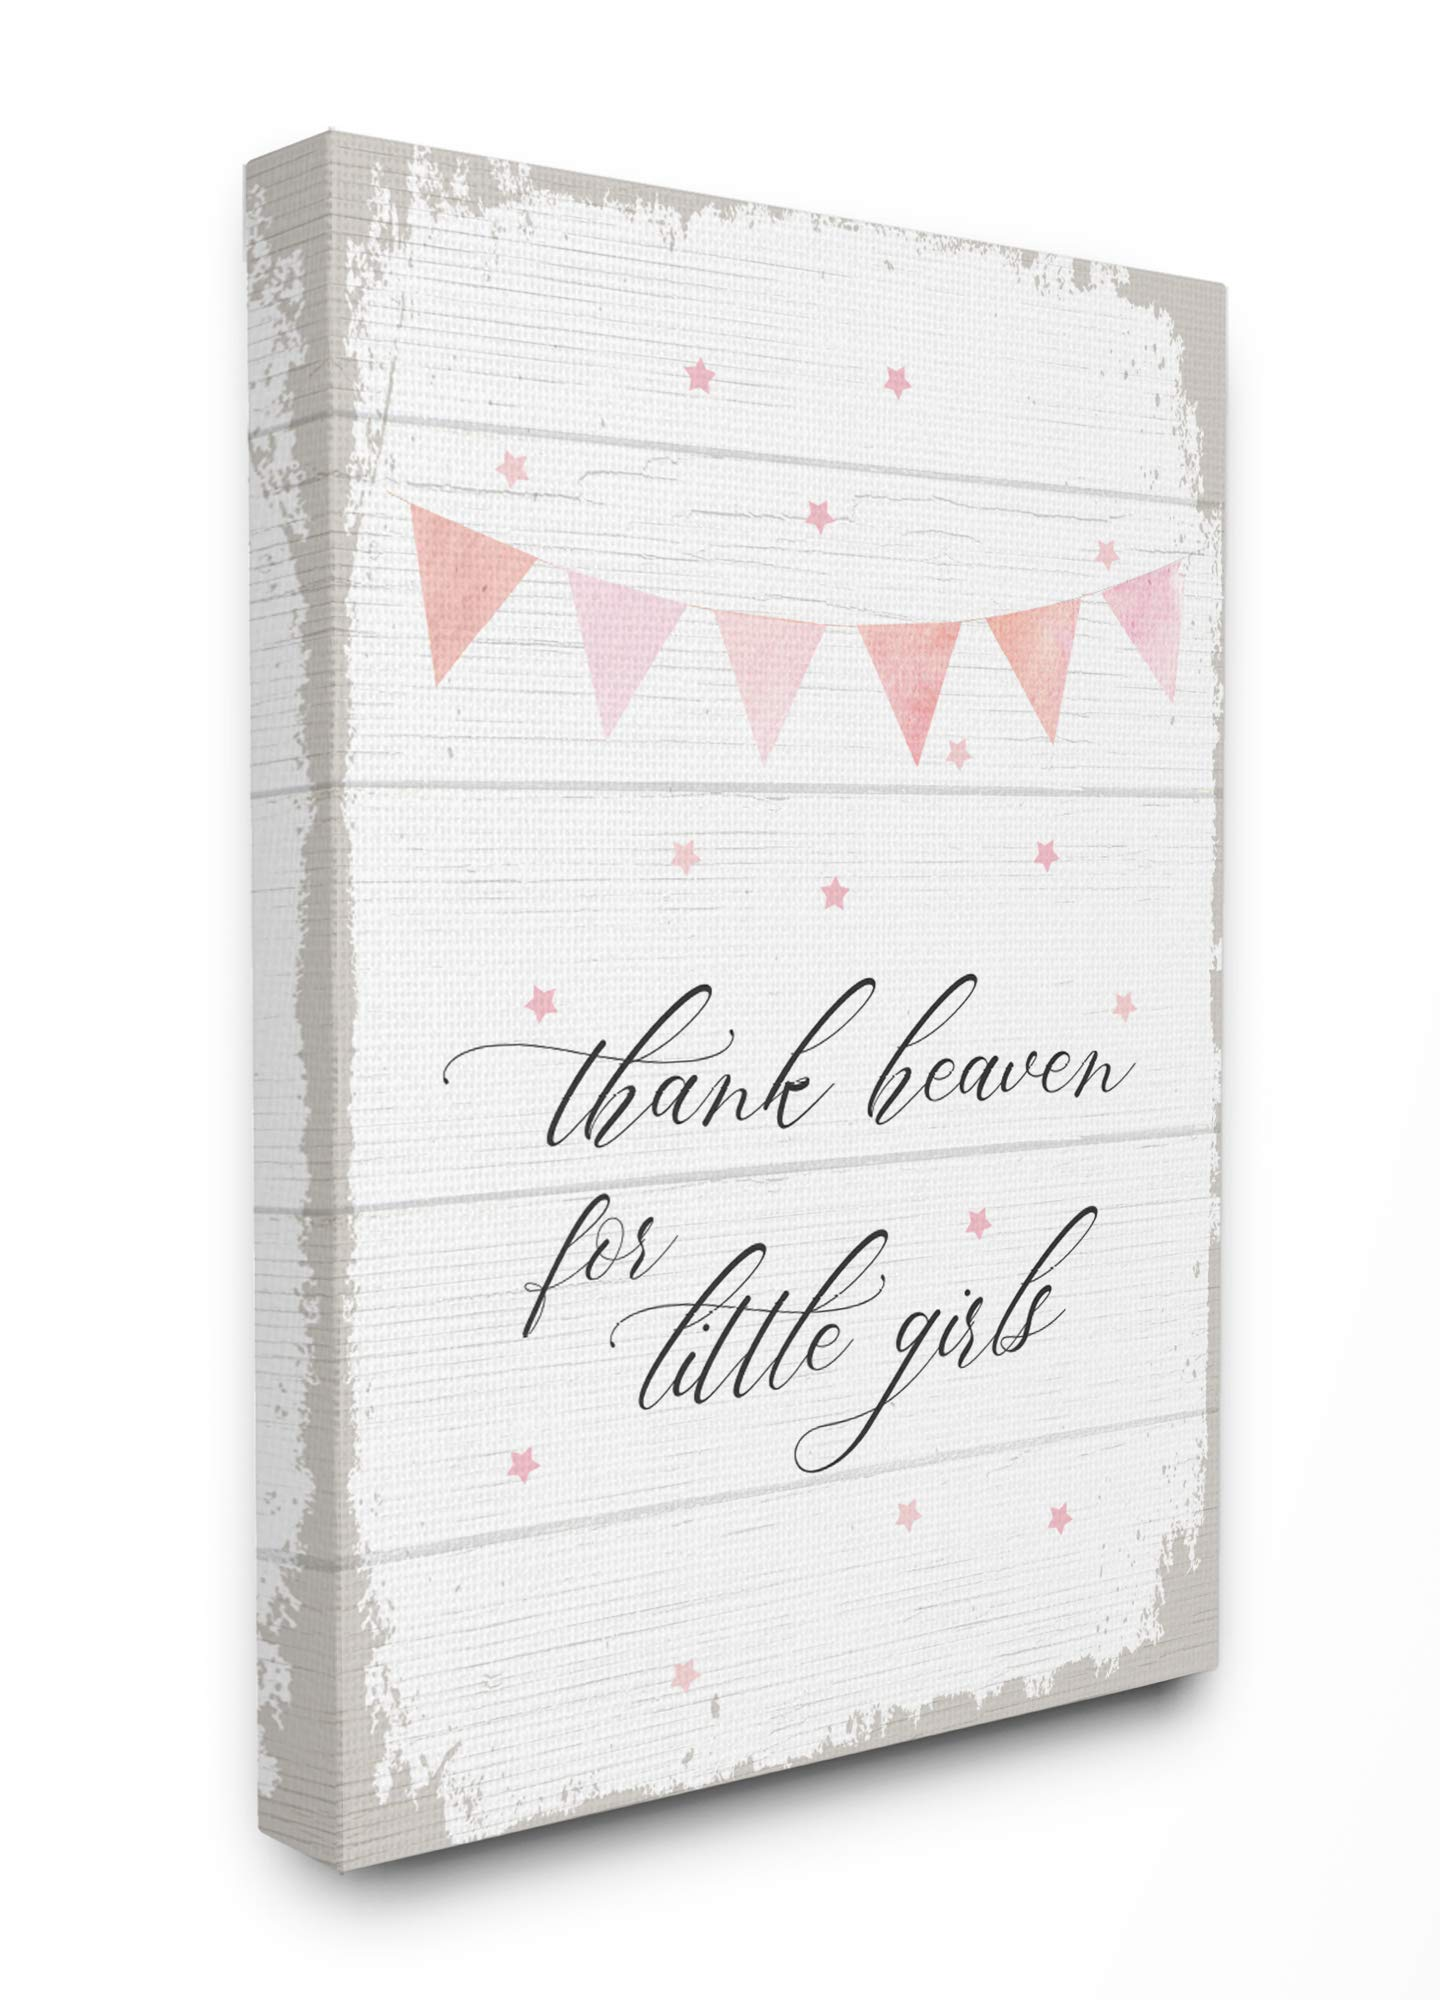 The Kids Room By Stupell Pink Bunting Thank Heaven for Little Girls Planked Look Canvas Wall Art, 16 x 20, Proudly Made in USA, Multicolor by The Kids Room by Stupell